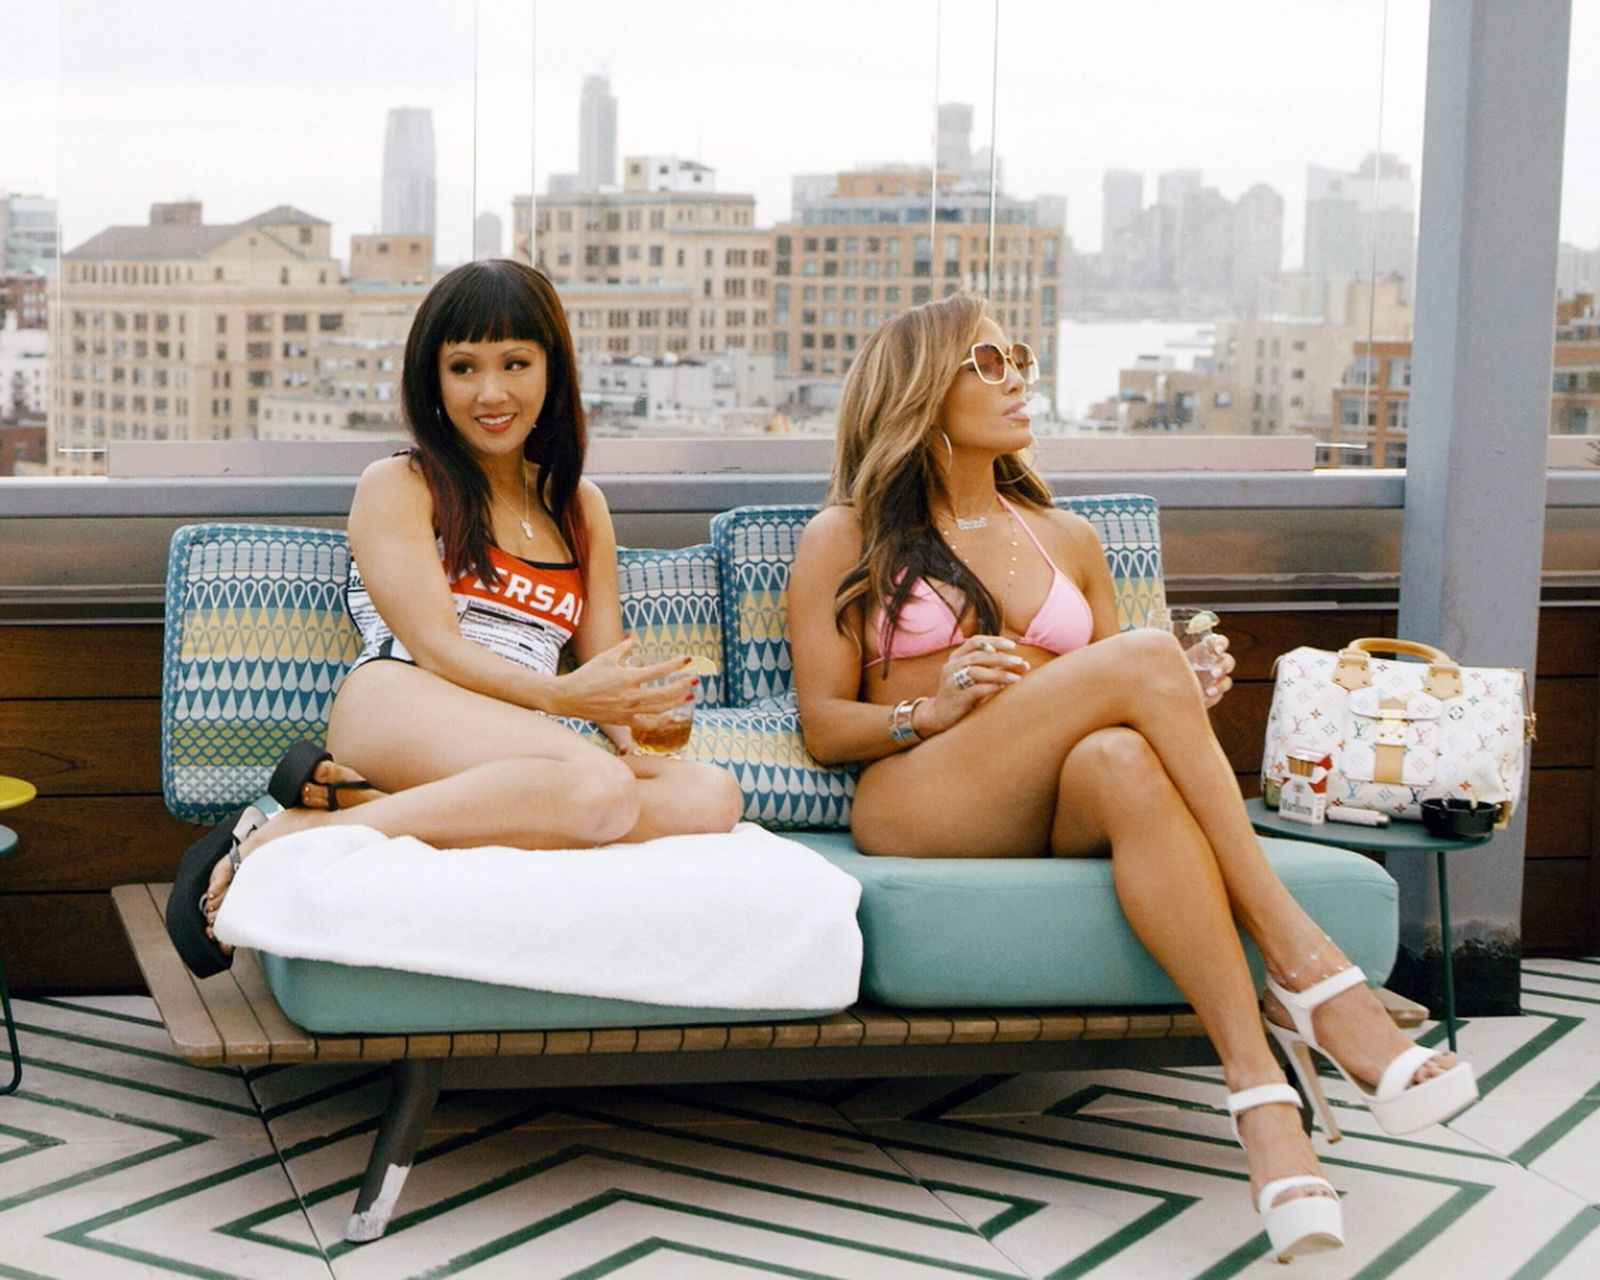 HUSTLERS, from left: Constance Wu and Jennifer Lopez, 2019. STX Entertainment /Courtesy Everett Collection For usage cre